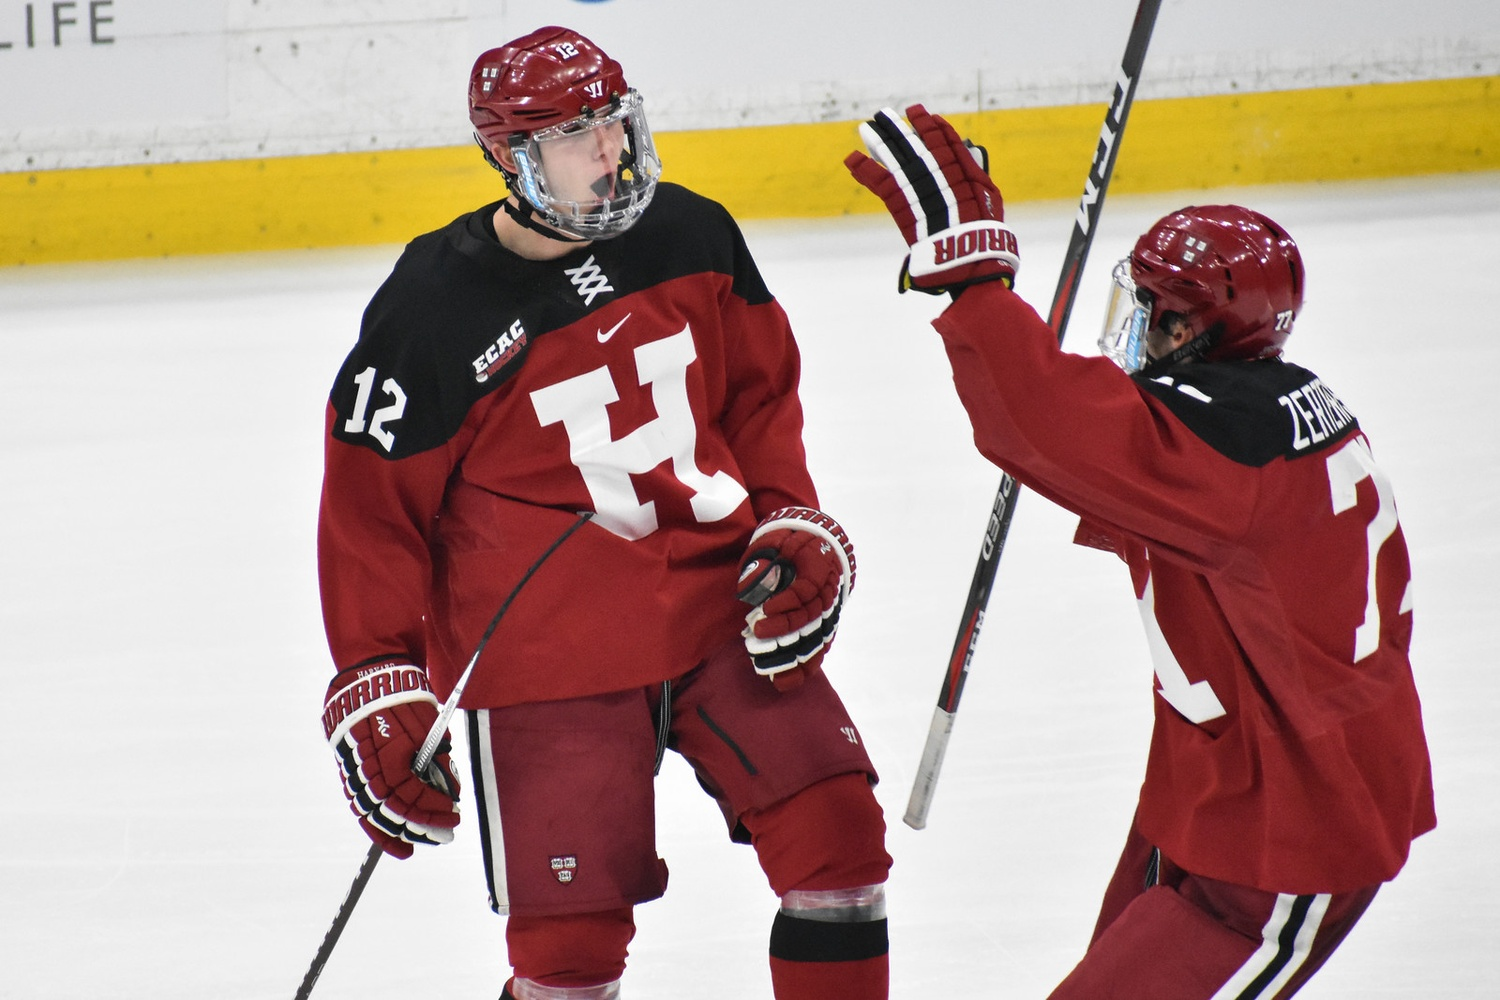 Late in the second period, John Marino's nifty display of offensive talent set up the Crimson's only goal of the game, courtesy of Henry Bowlby.